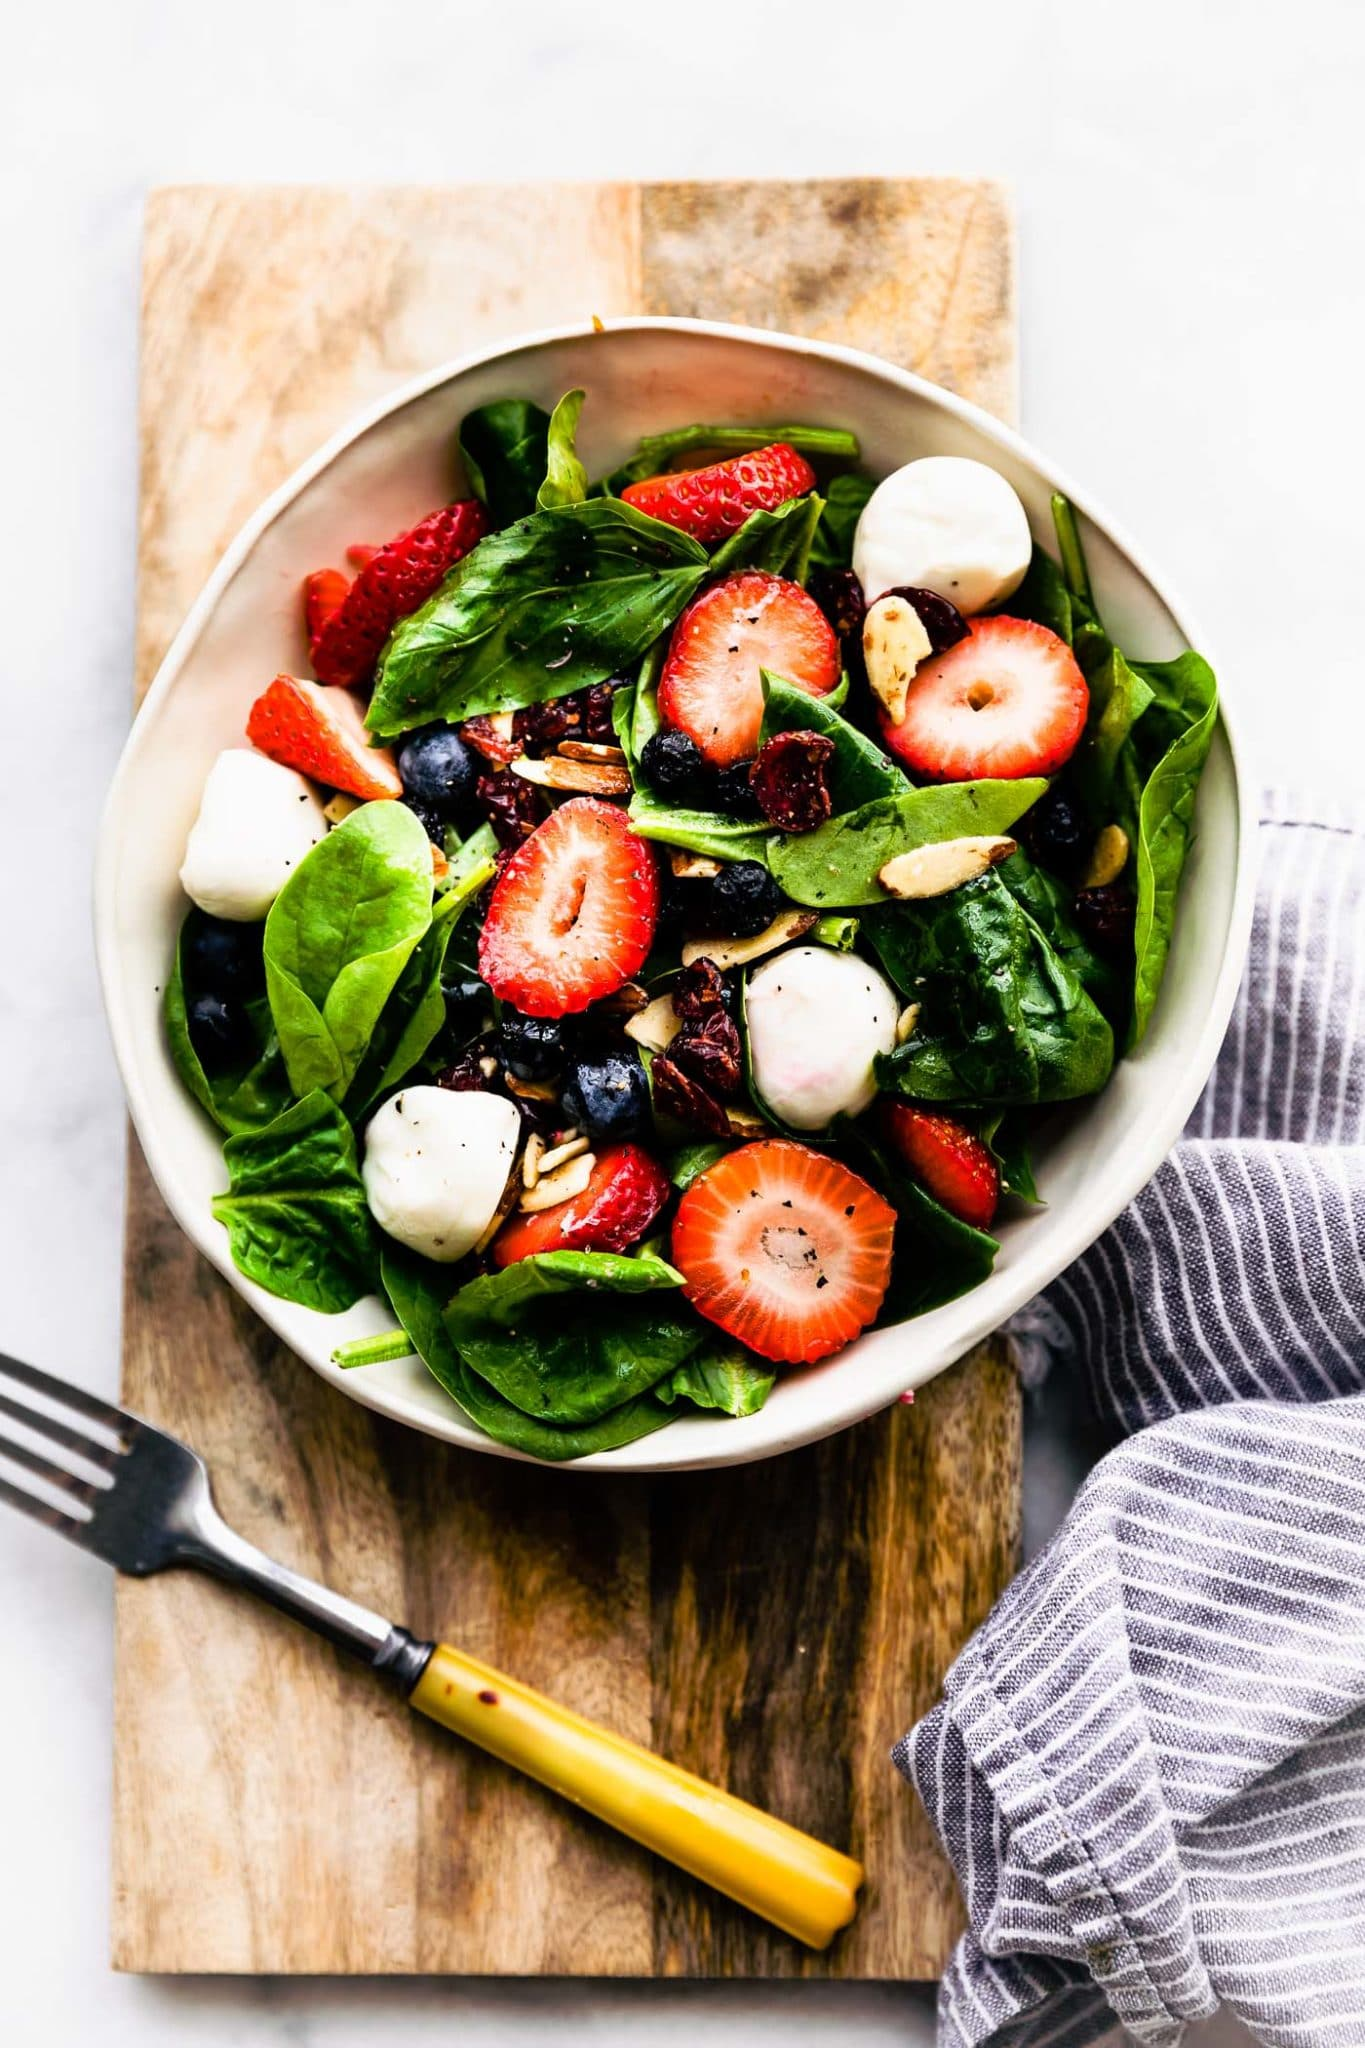 Overhead image of a bowl holding berry caprese salad on a wooden serving platter.